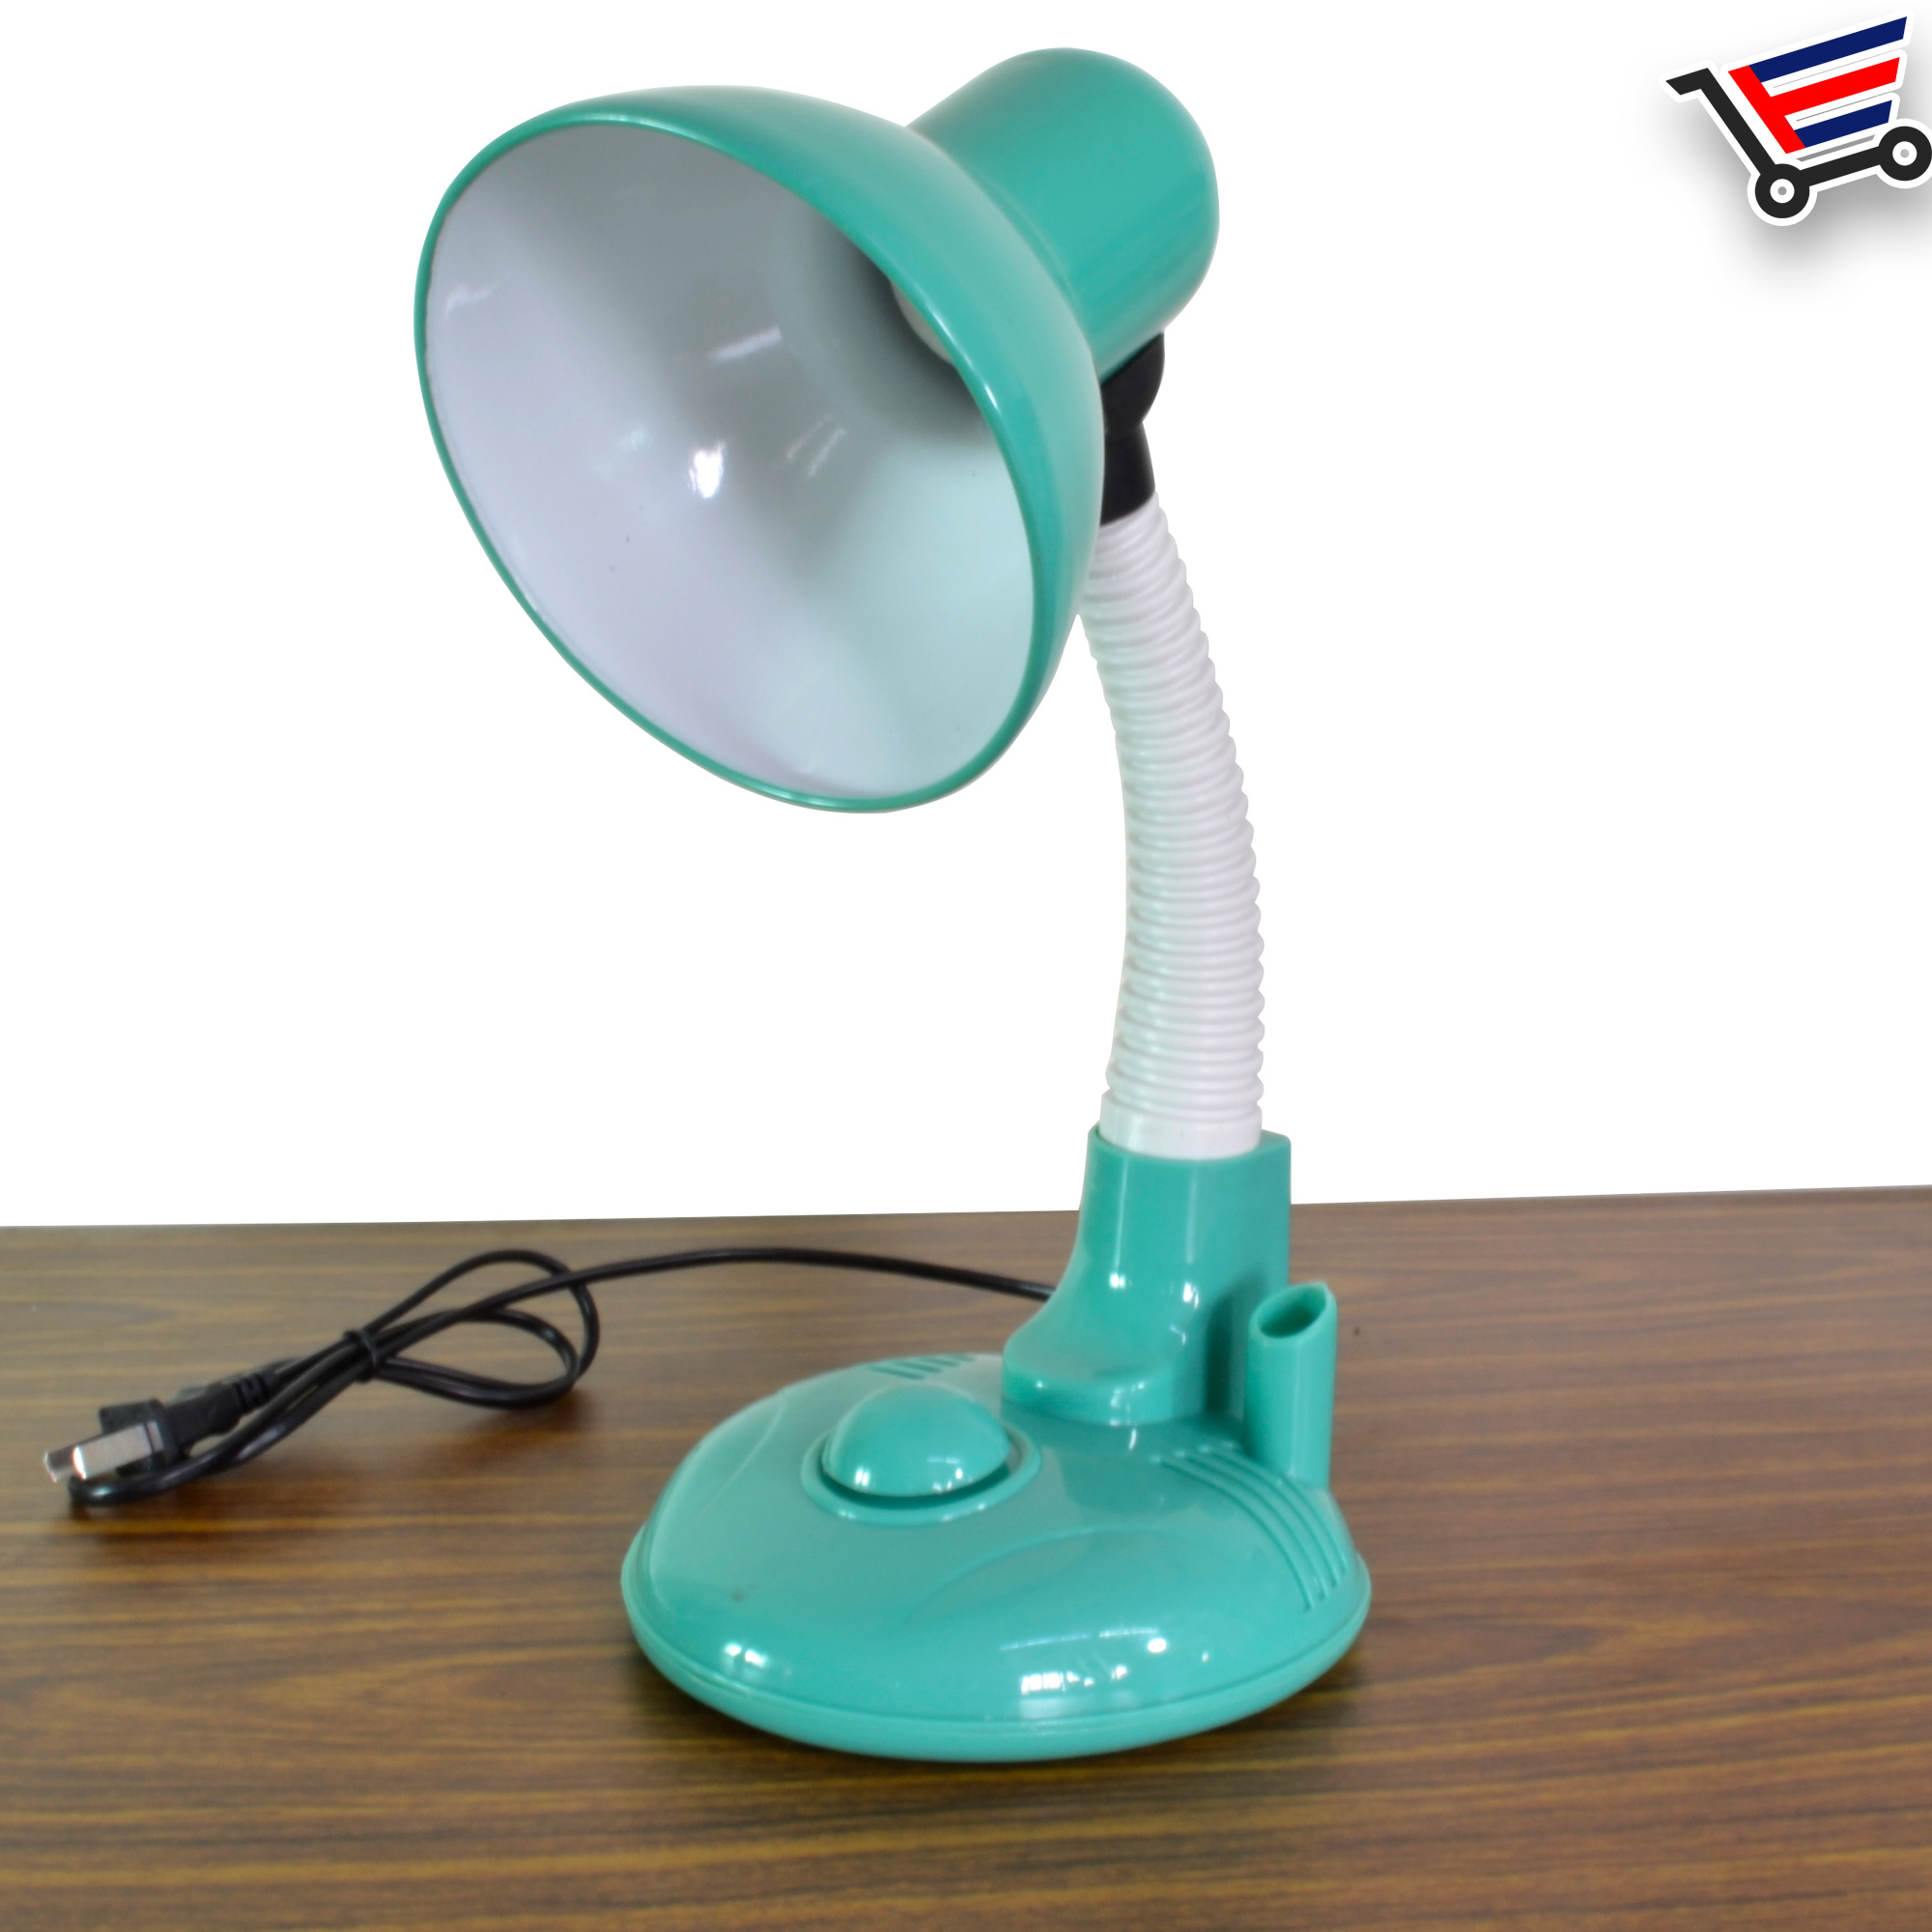 Home and Office Cute Table Lamp With Pen Holder (Green) | Lazada PH:,Lighting